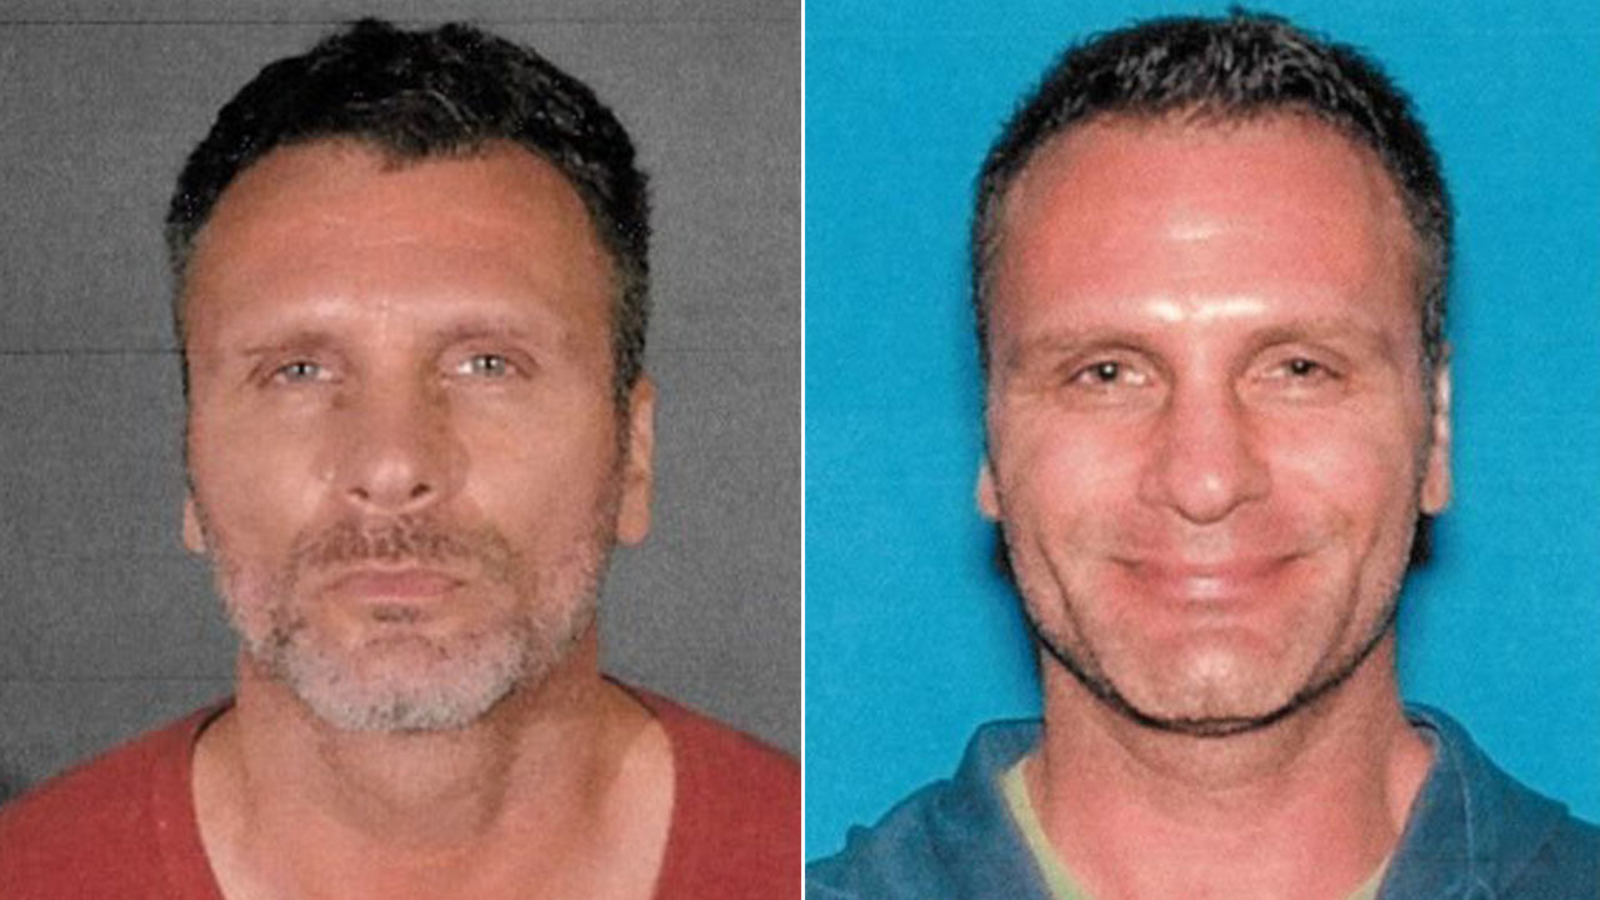 Los Angeles Sexual Assault Suspect On Fbis Most Wanted List Spotted In South Carolina -3532